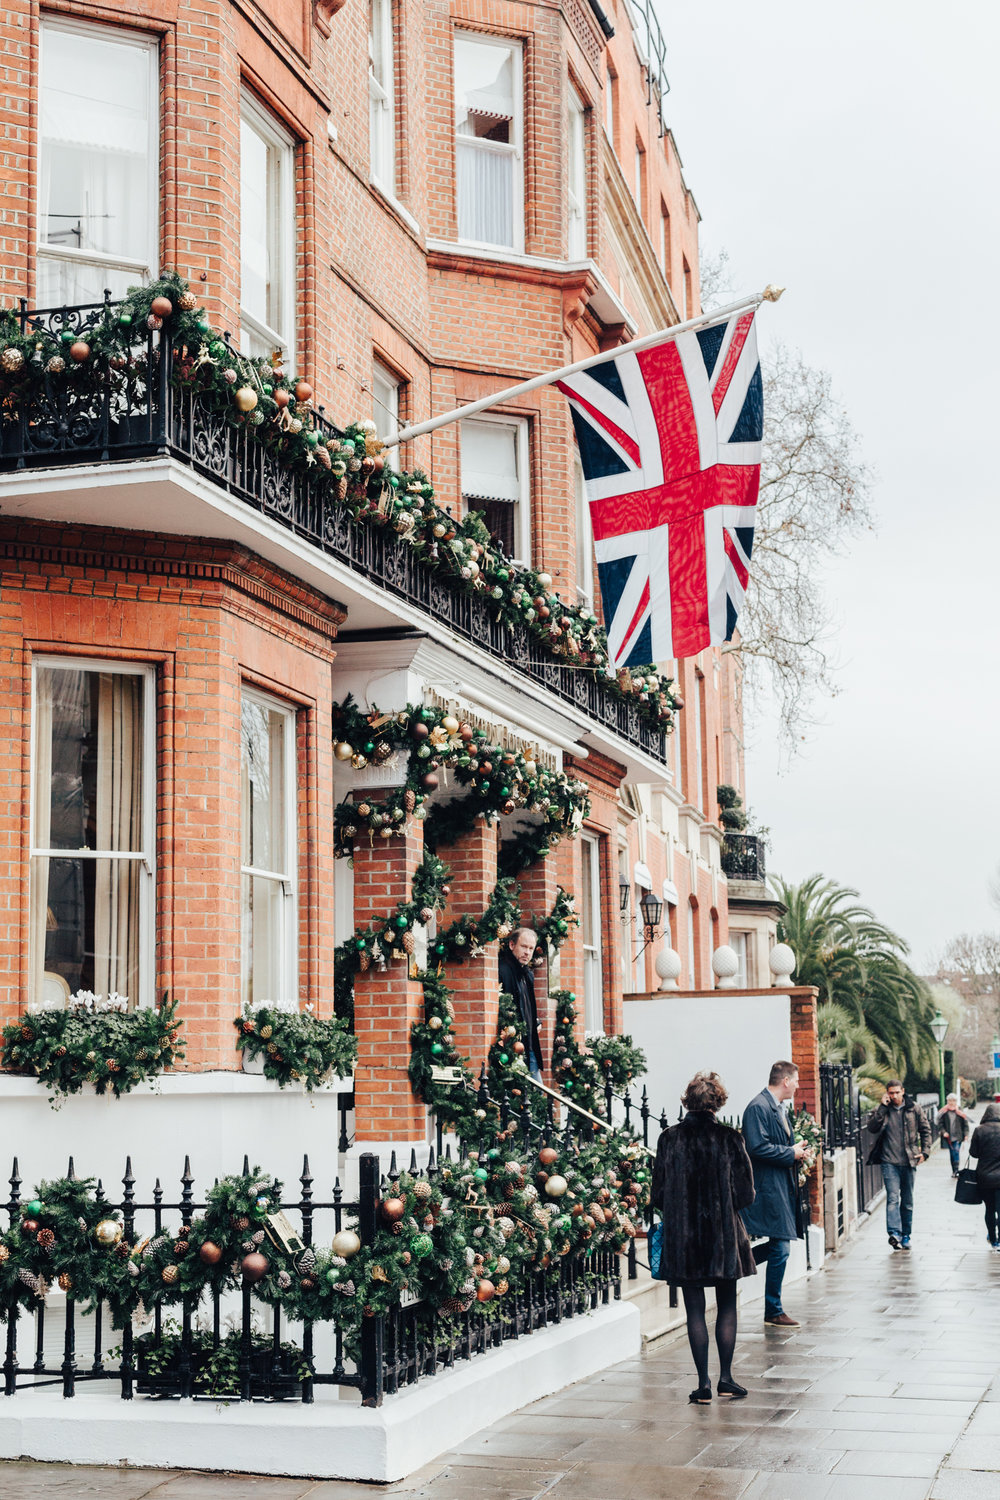 The Rye Christmas Guide to London + Some Festive Spirit